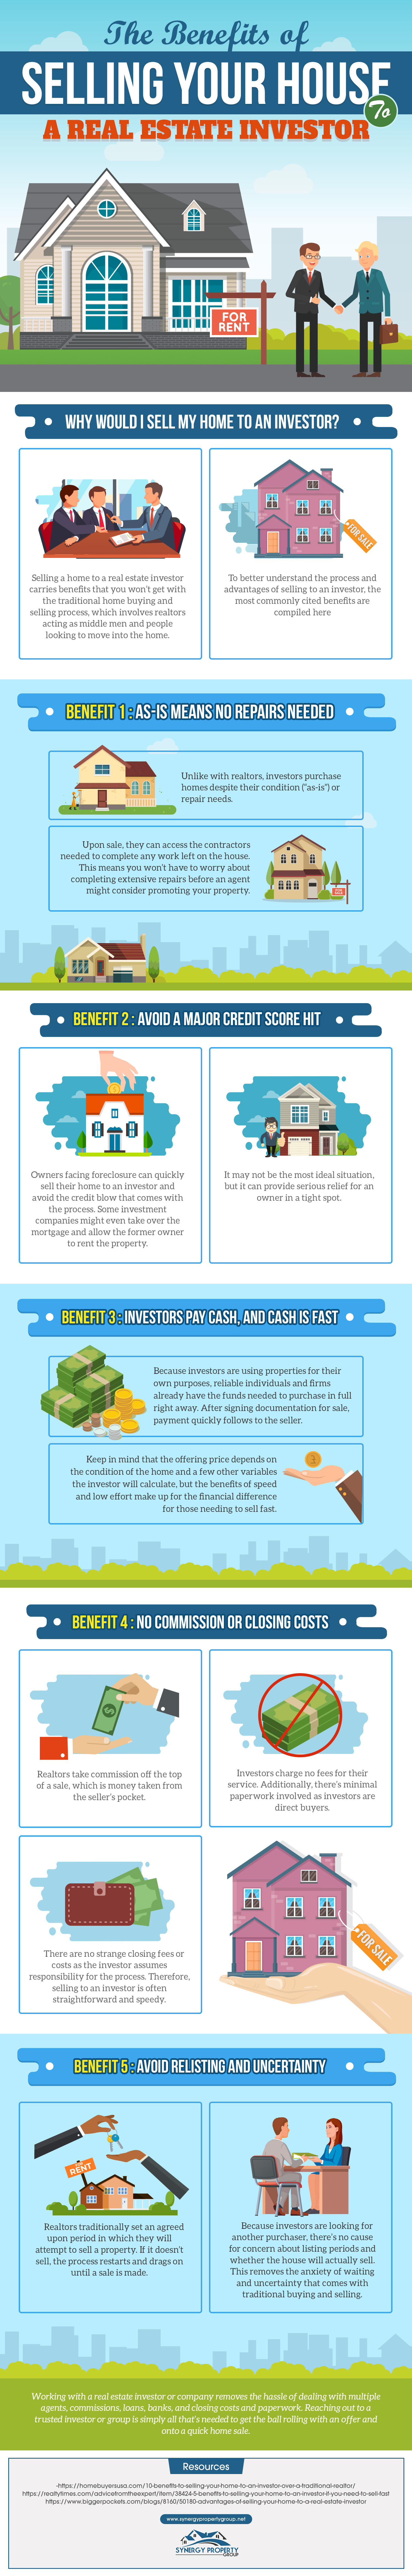 The Benefits of Selling Your House to a Real Estate Investor